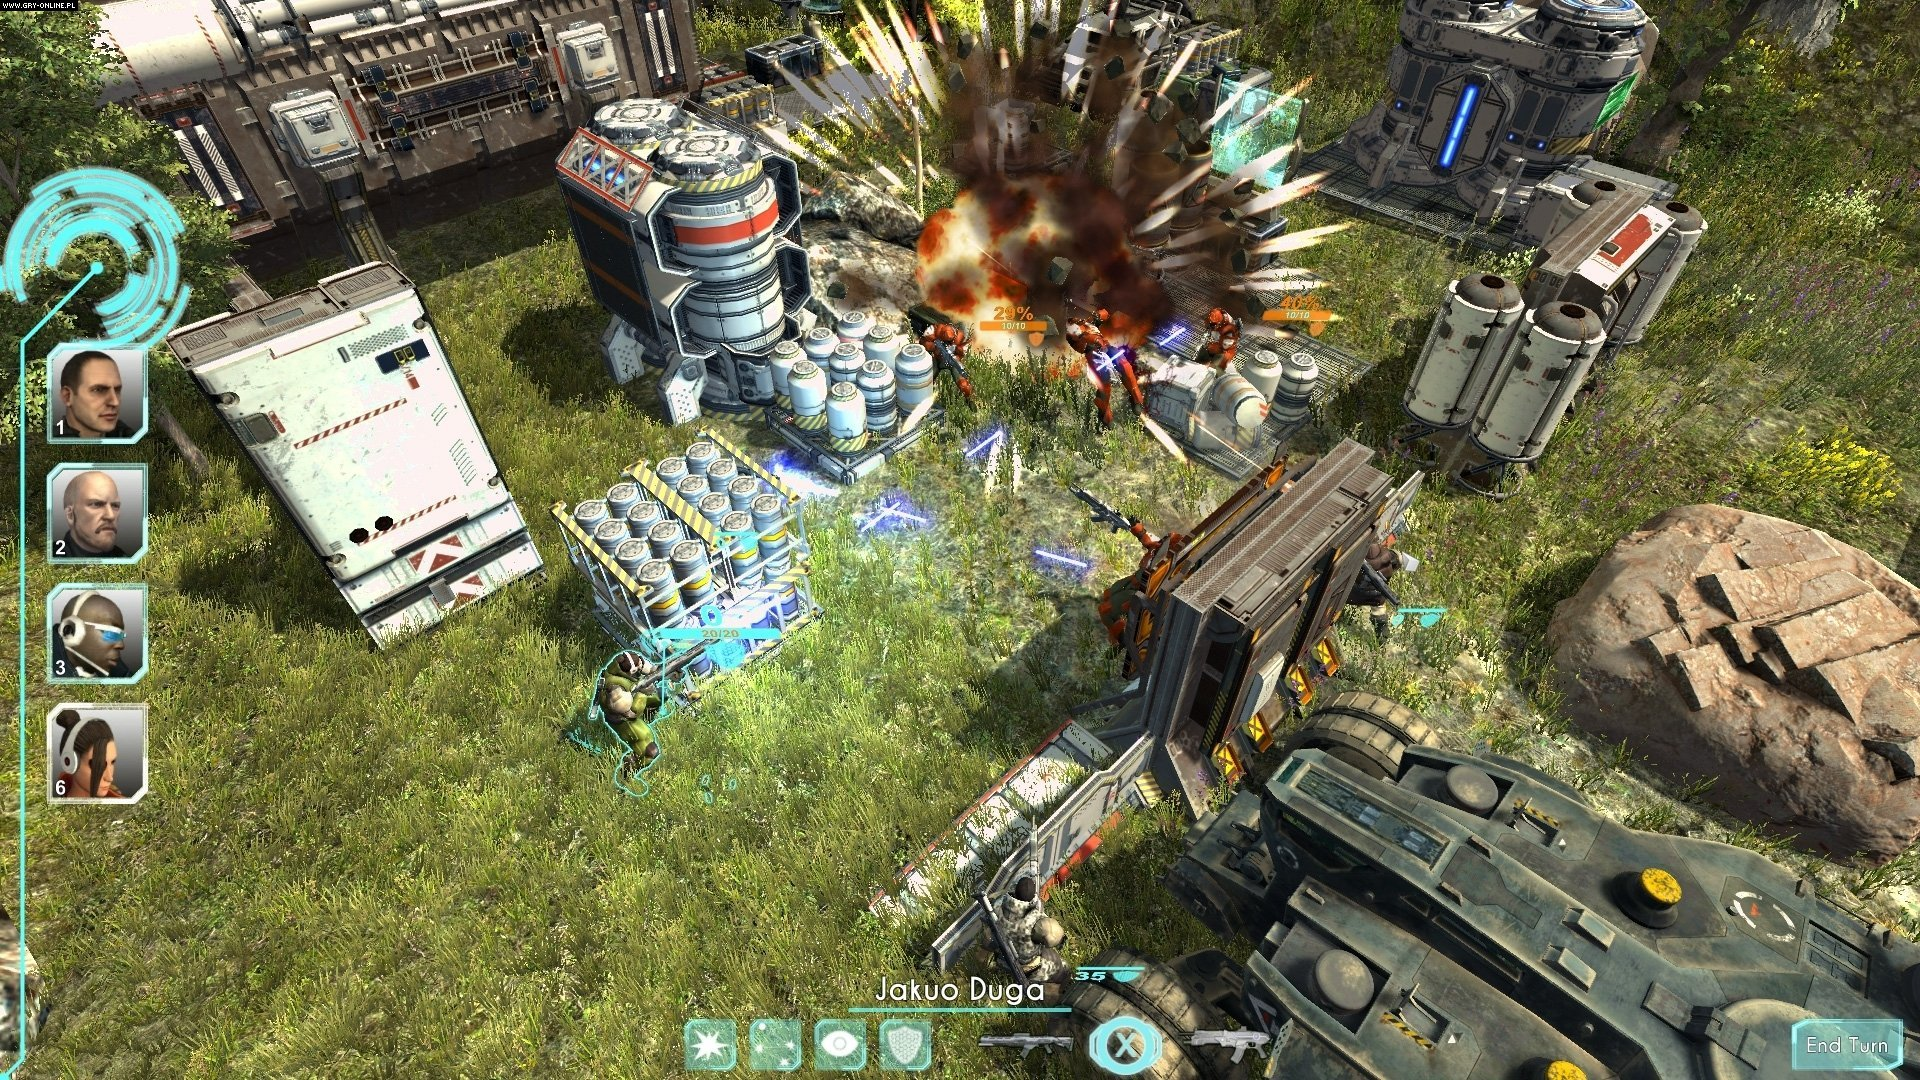 Shock Tactics PC Games Image 2/9, Point Blank Games, EuroVideo Medien